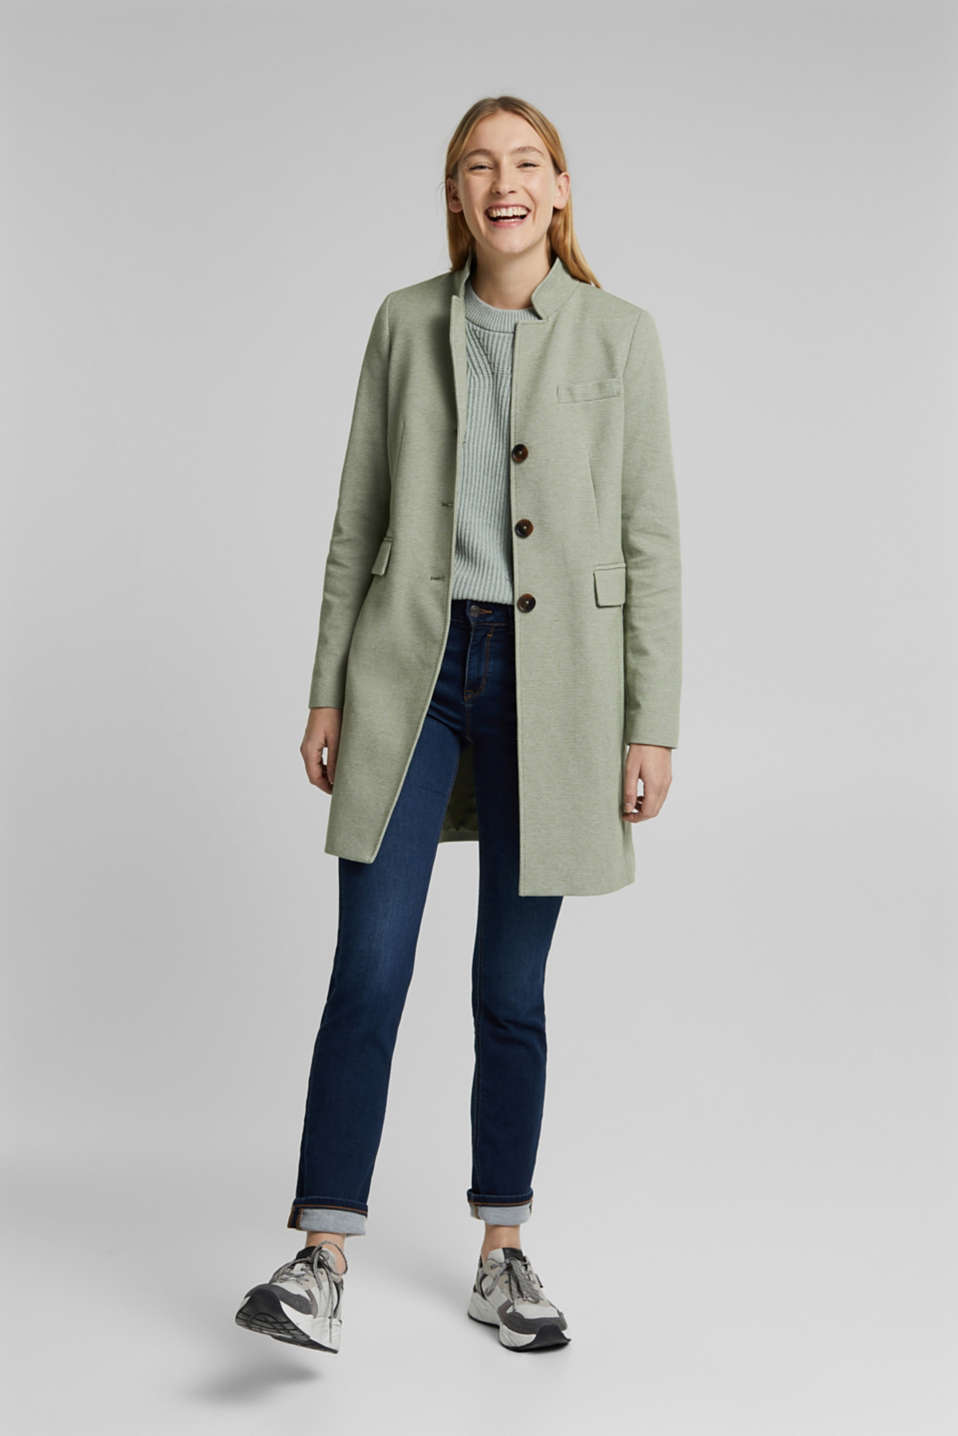 Esprit - In blended cotton: jersey coat